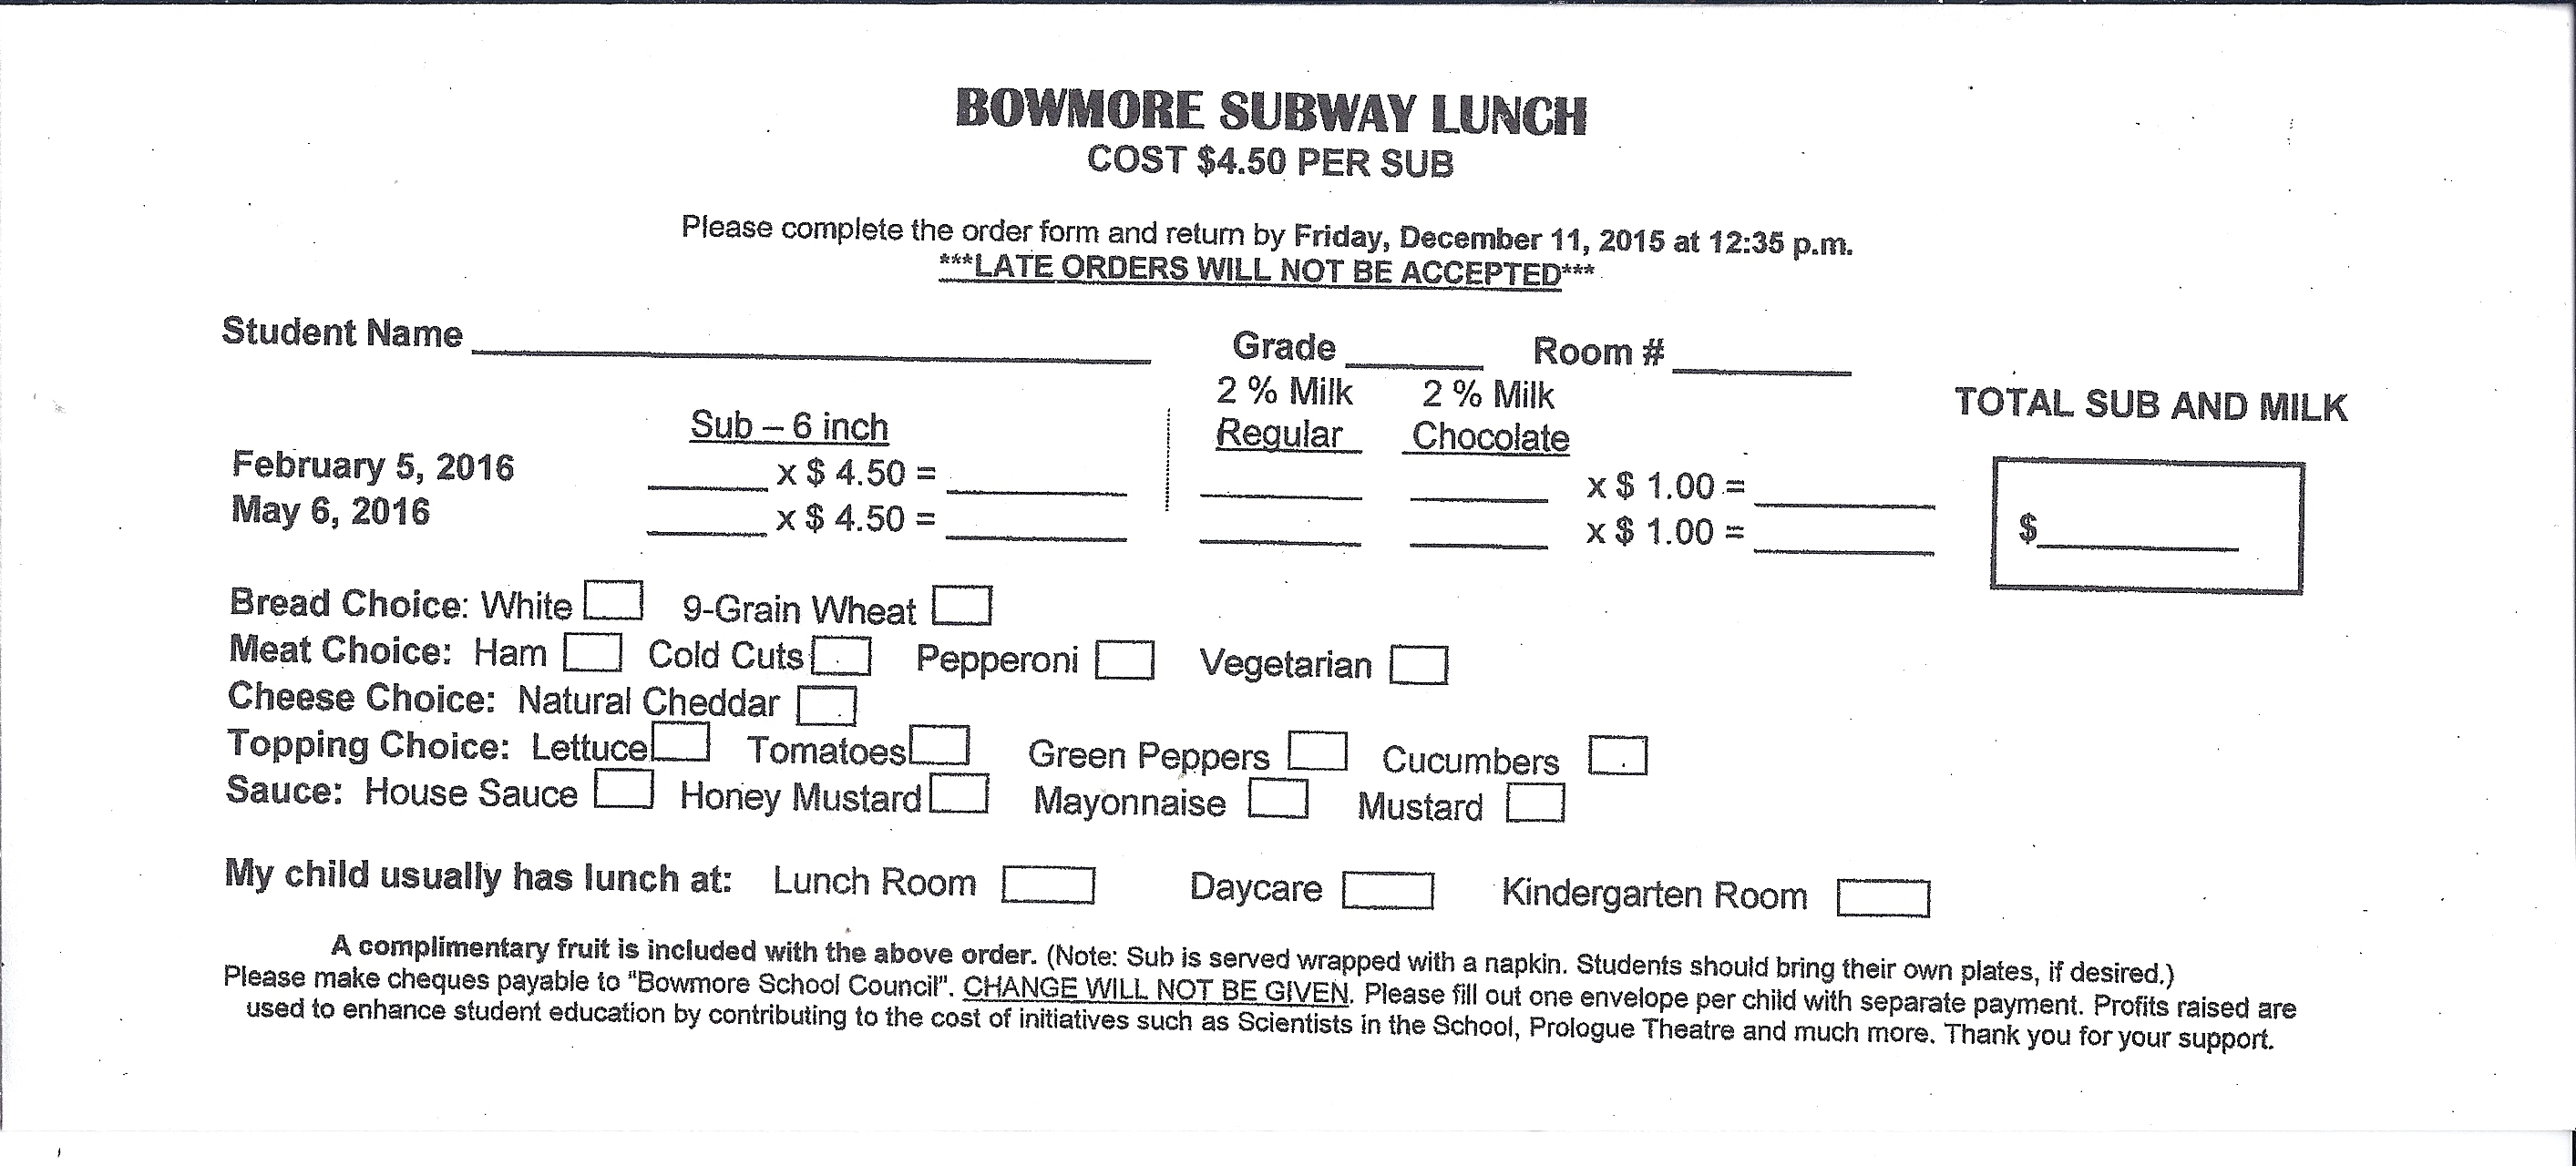 Subway Lunch – cannot accept late orders – due Fri Jan 22 ...